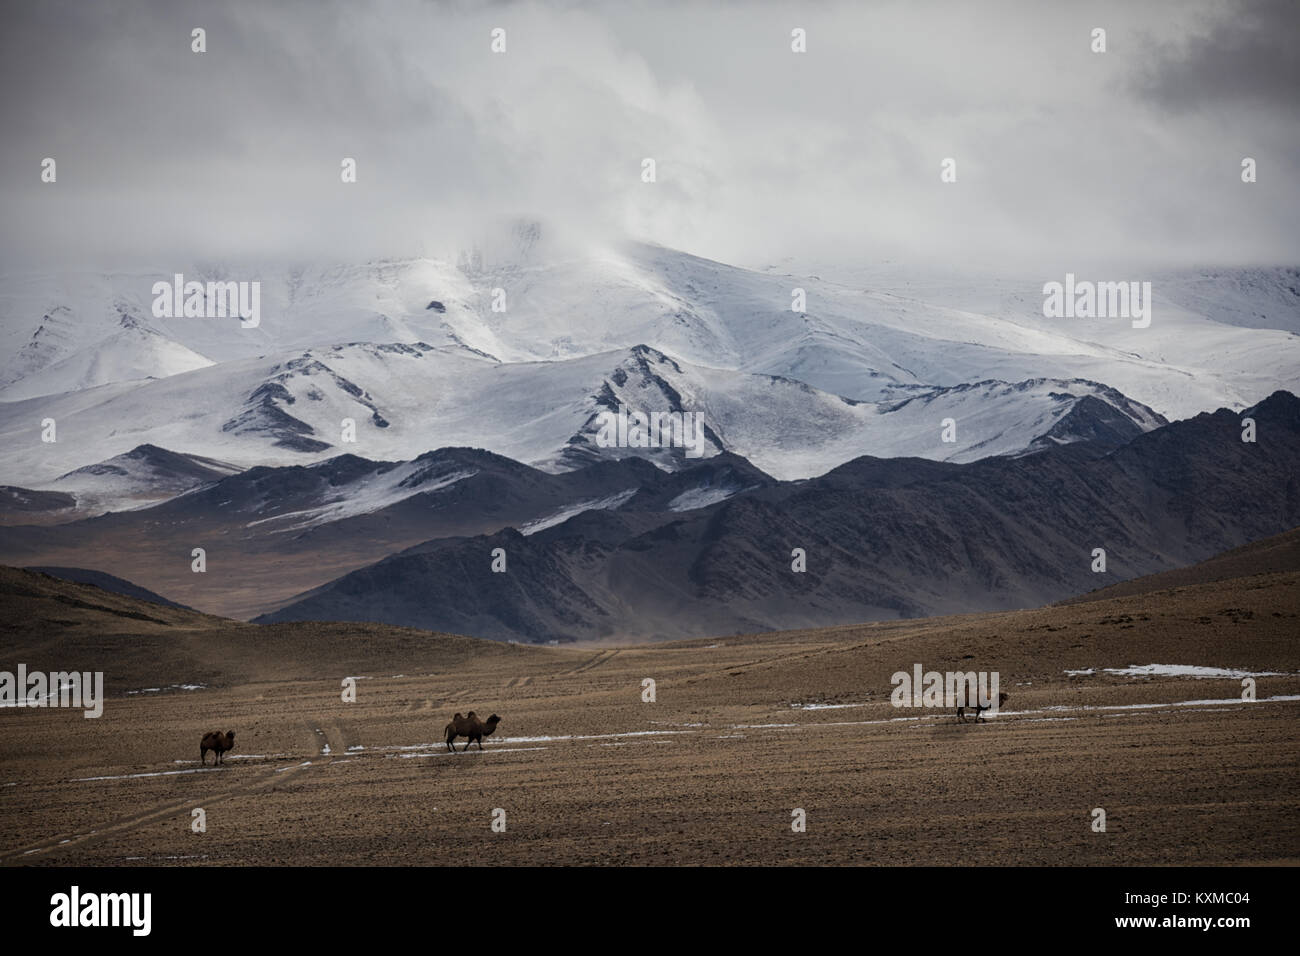 Mongolia winter lake snowy mountains cloudy camels grasslands steppes Mongolian - Stock Image